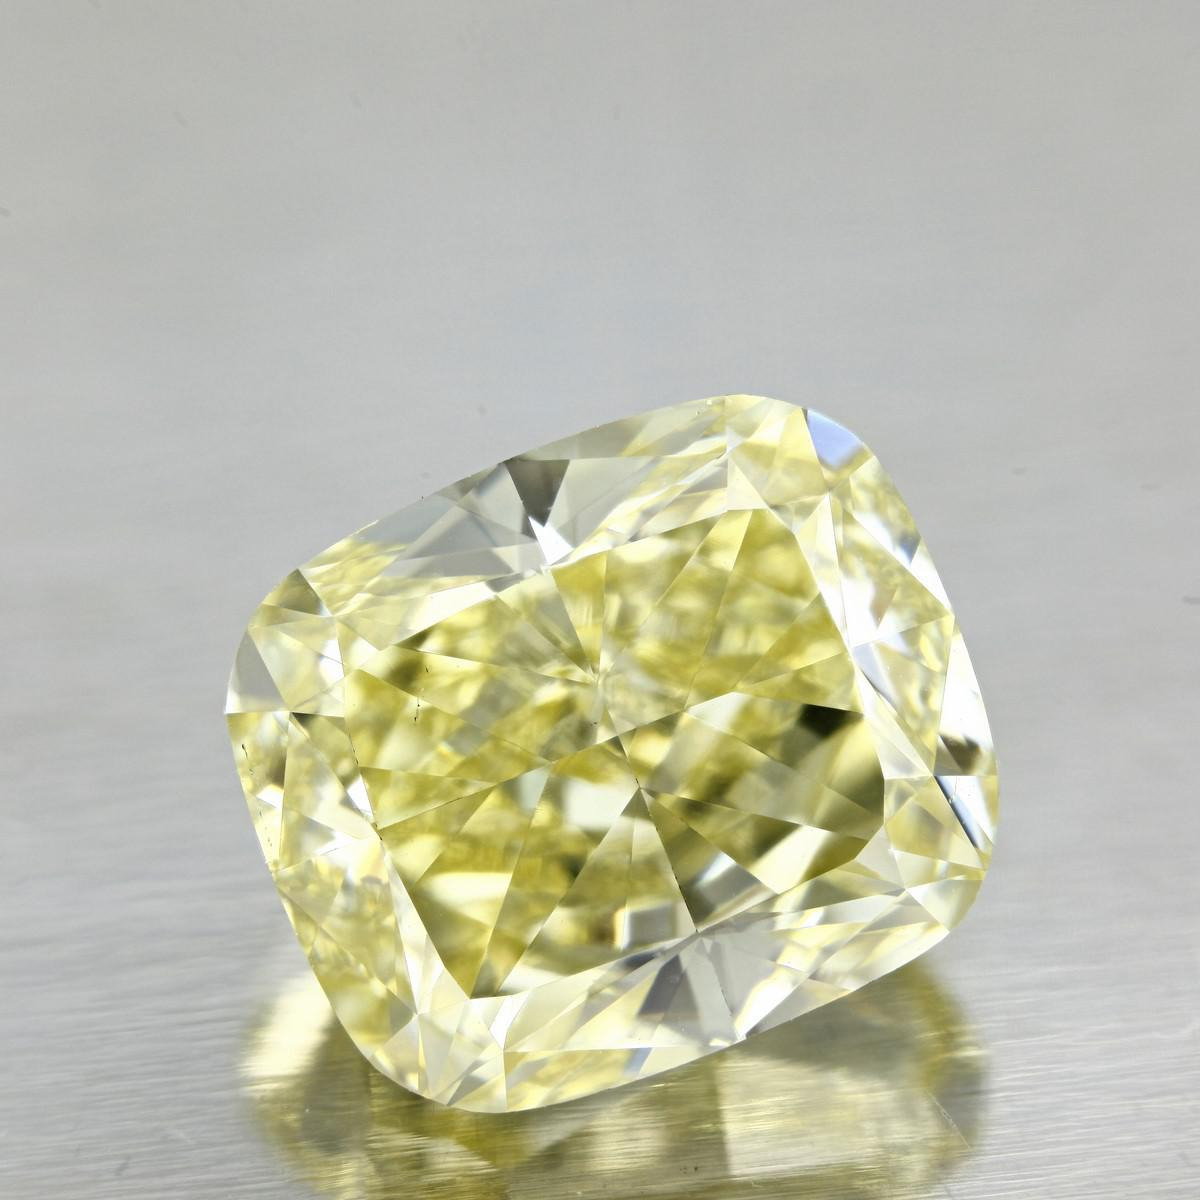 When it comes to these yellow beauties, it is exactly the opposite. The more colour you can see in the diamond or the more beautiful the yellow colour, the more expensive and exquisite that yellow diamond becomes. -